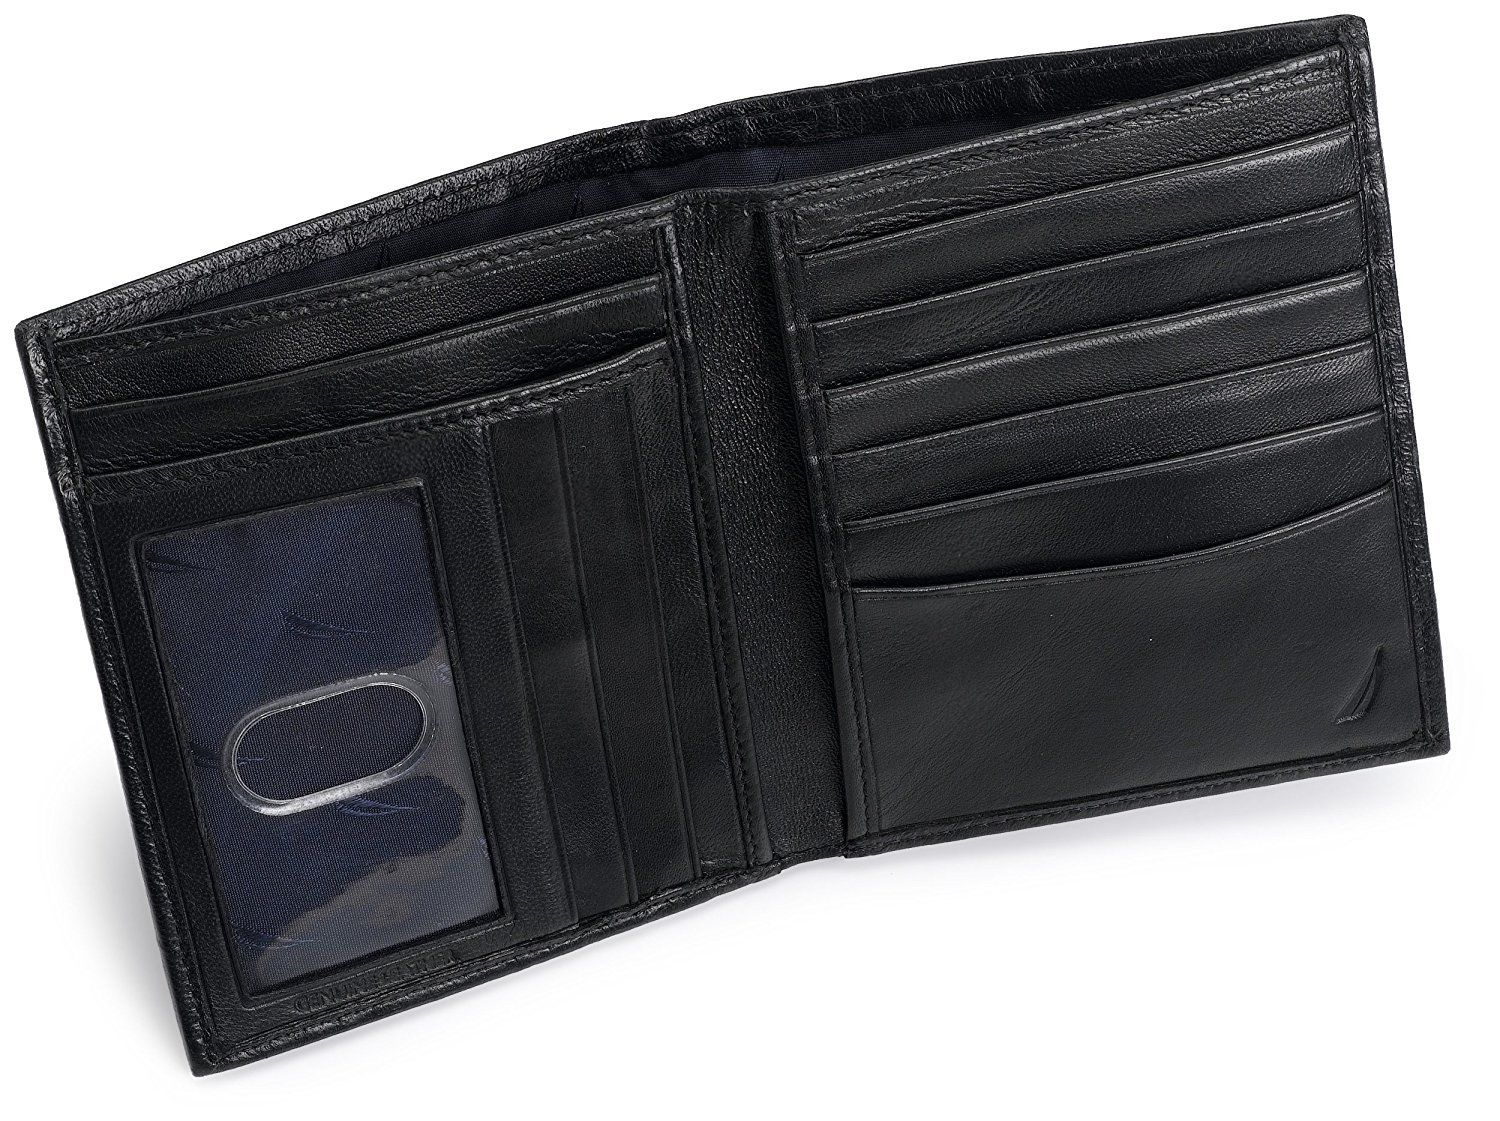 New-Nautica-Men-039-s-Premium-Leather-Credit-Card-ID-Organizer-Big-Wallet-31NU19X003 thumbnail 8